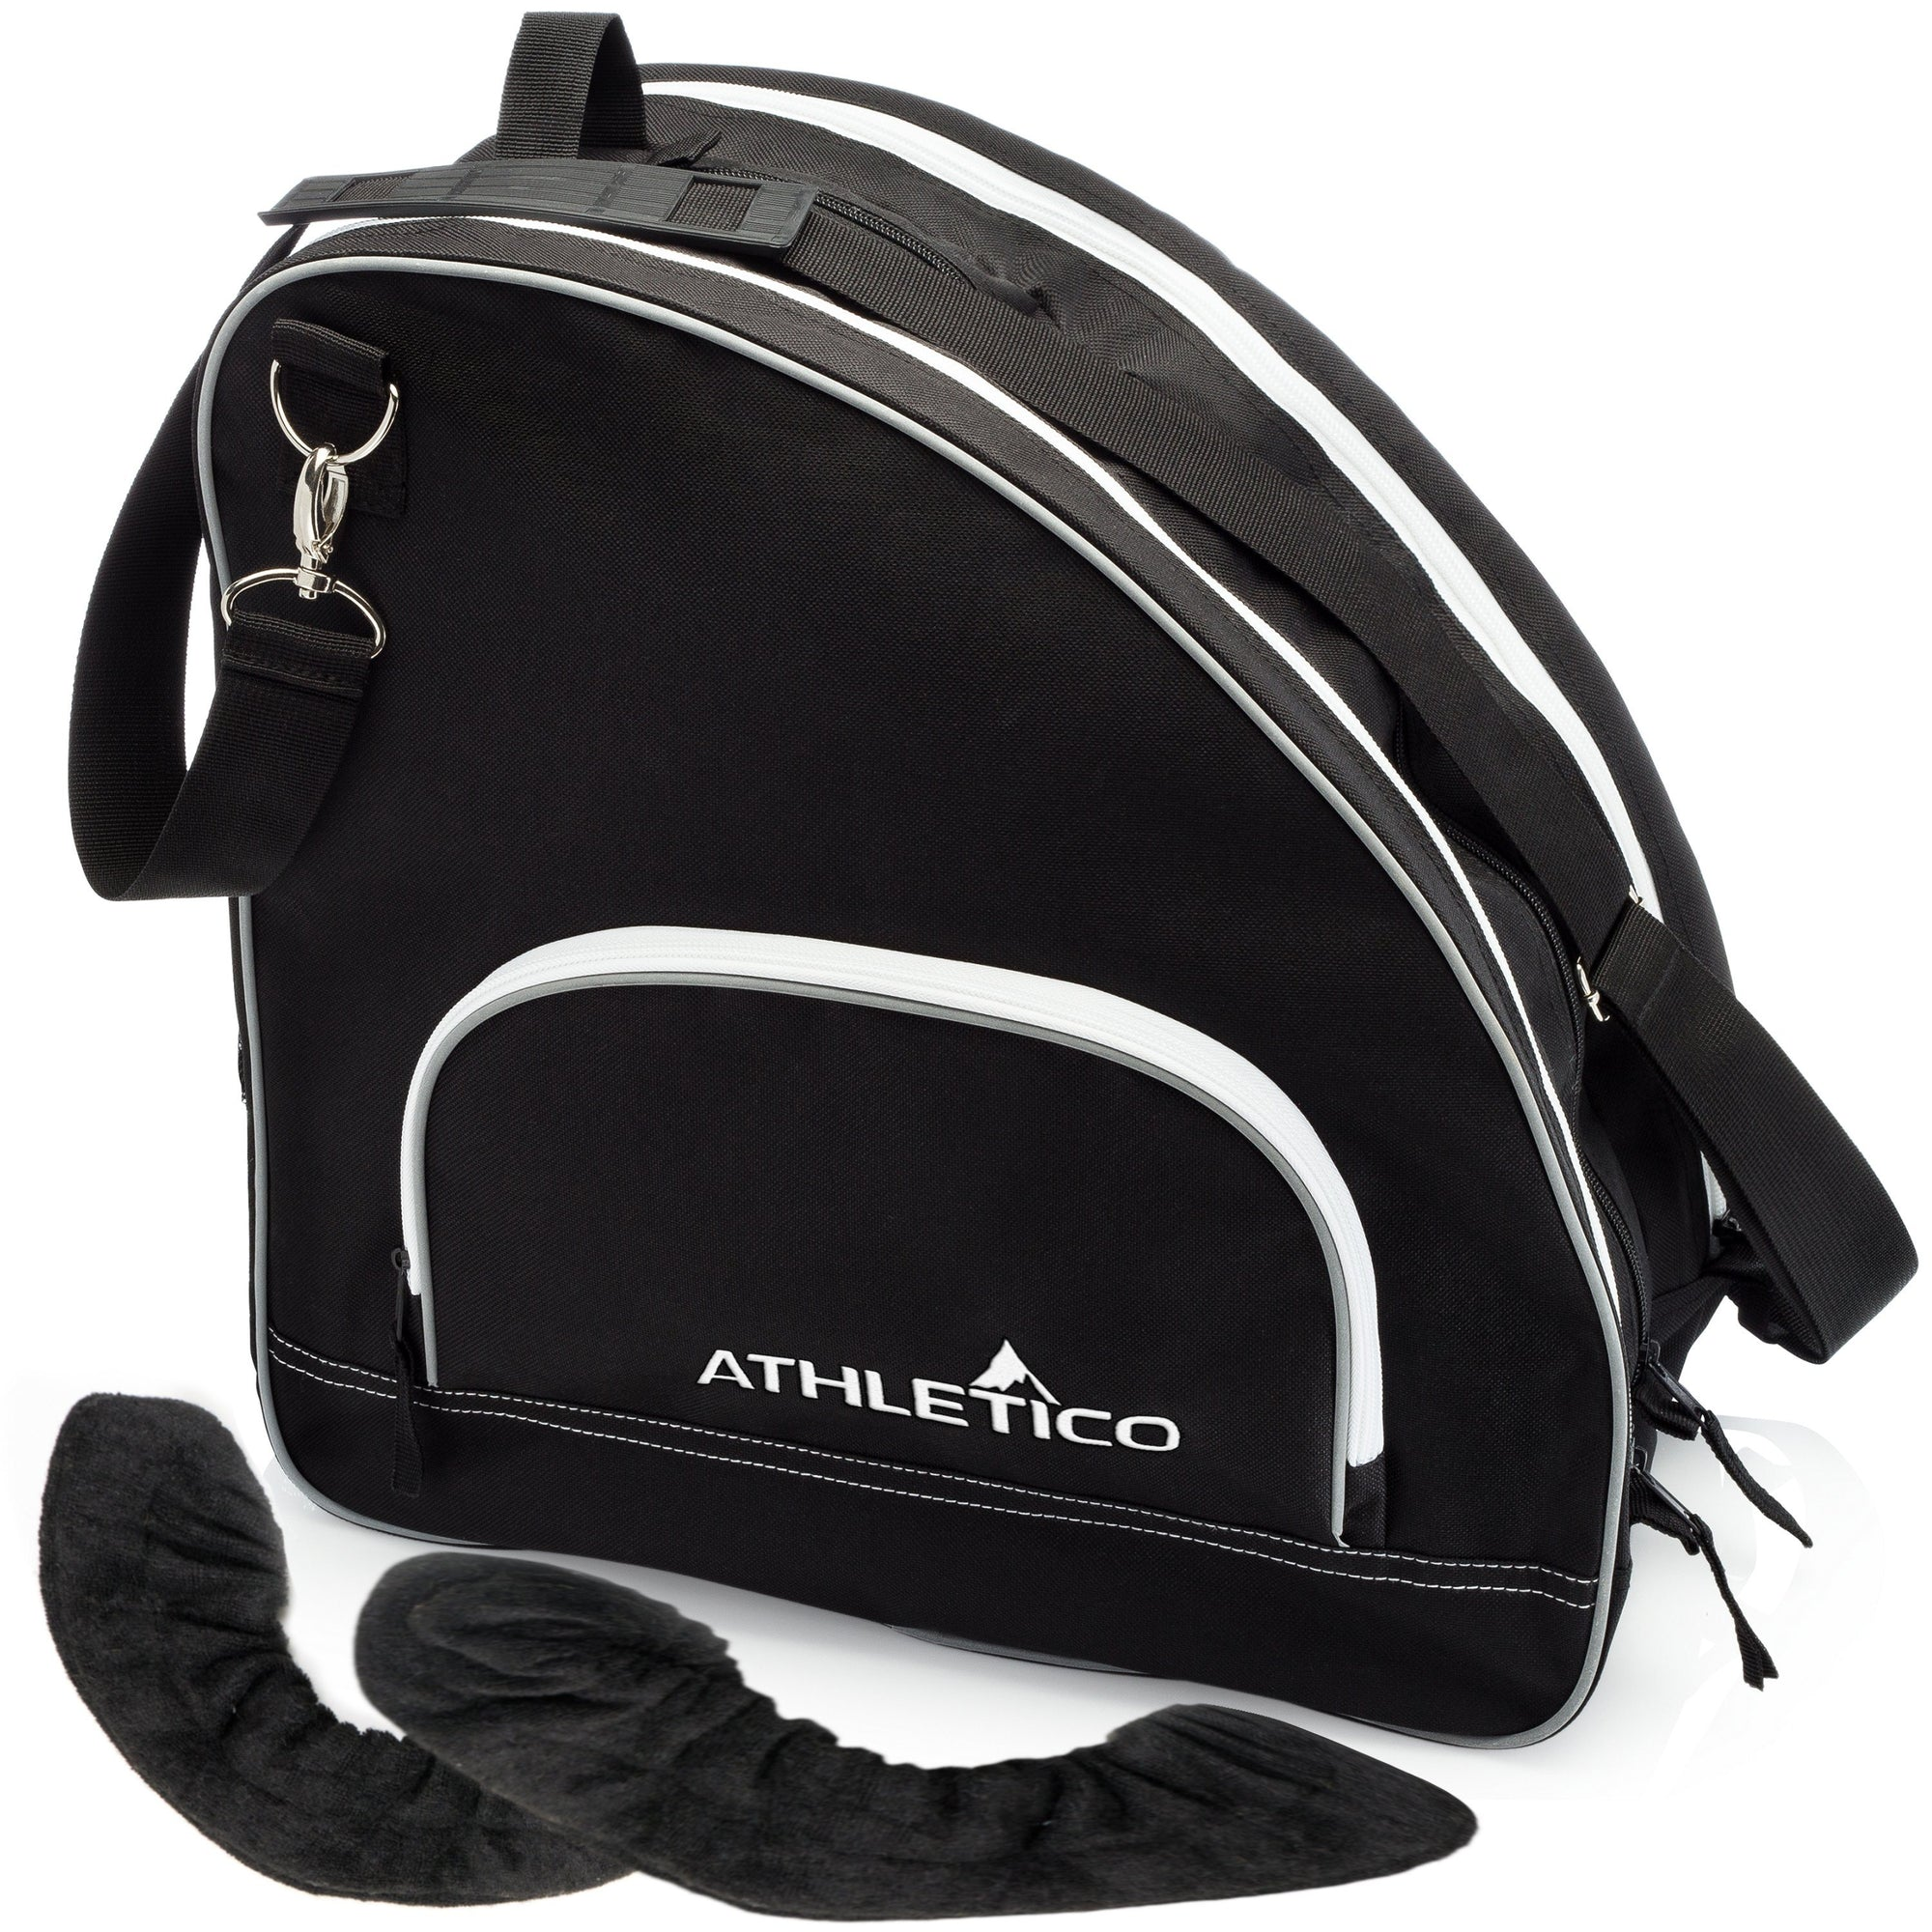 Athletico Skate Bag + Large Blade Cover - Athletico